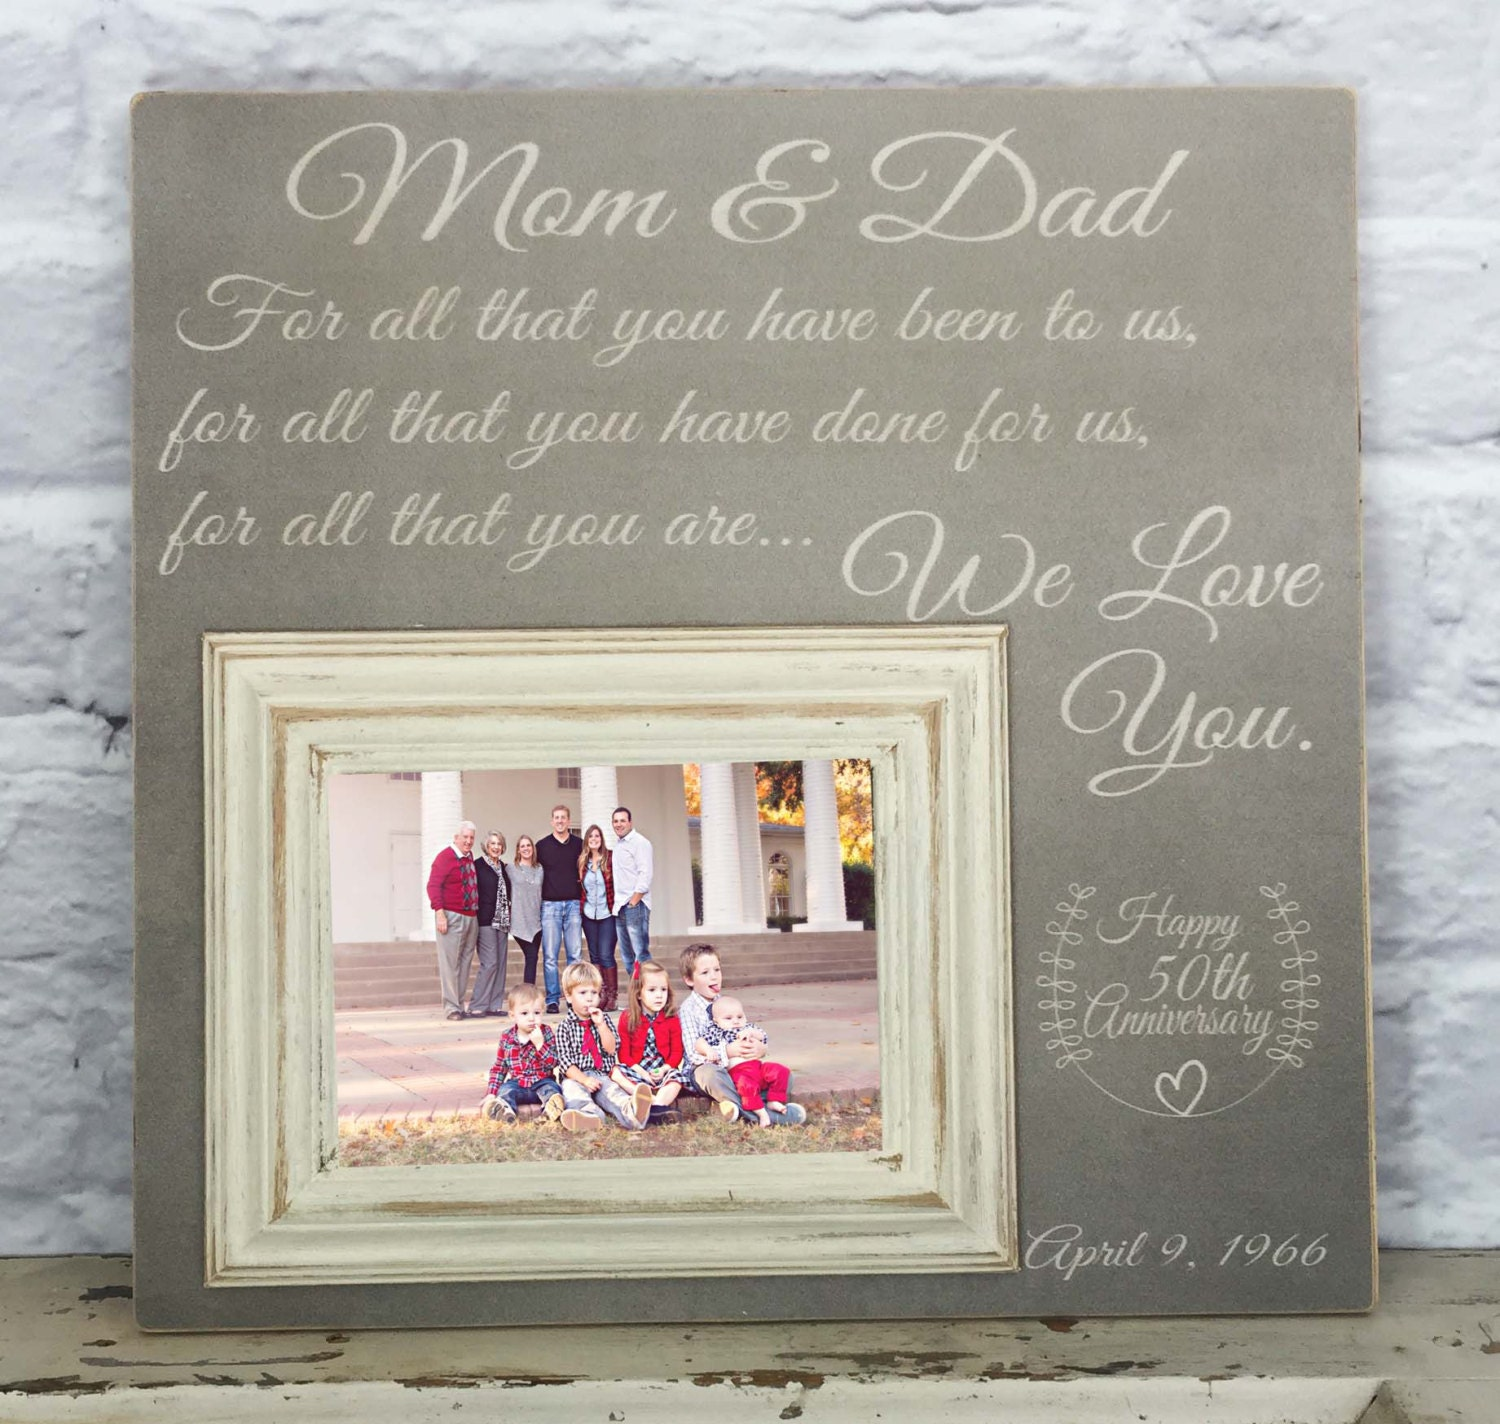 50th wedding anniversary gifts for mum and dad uk gift for Best gifts for 50th wedding anniversary